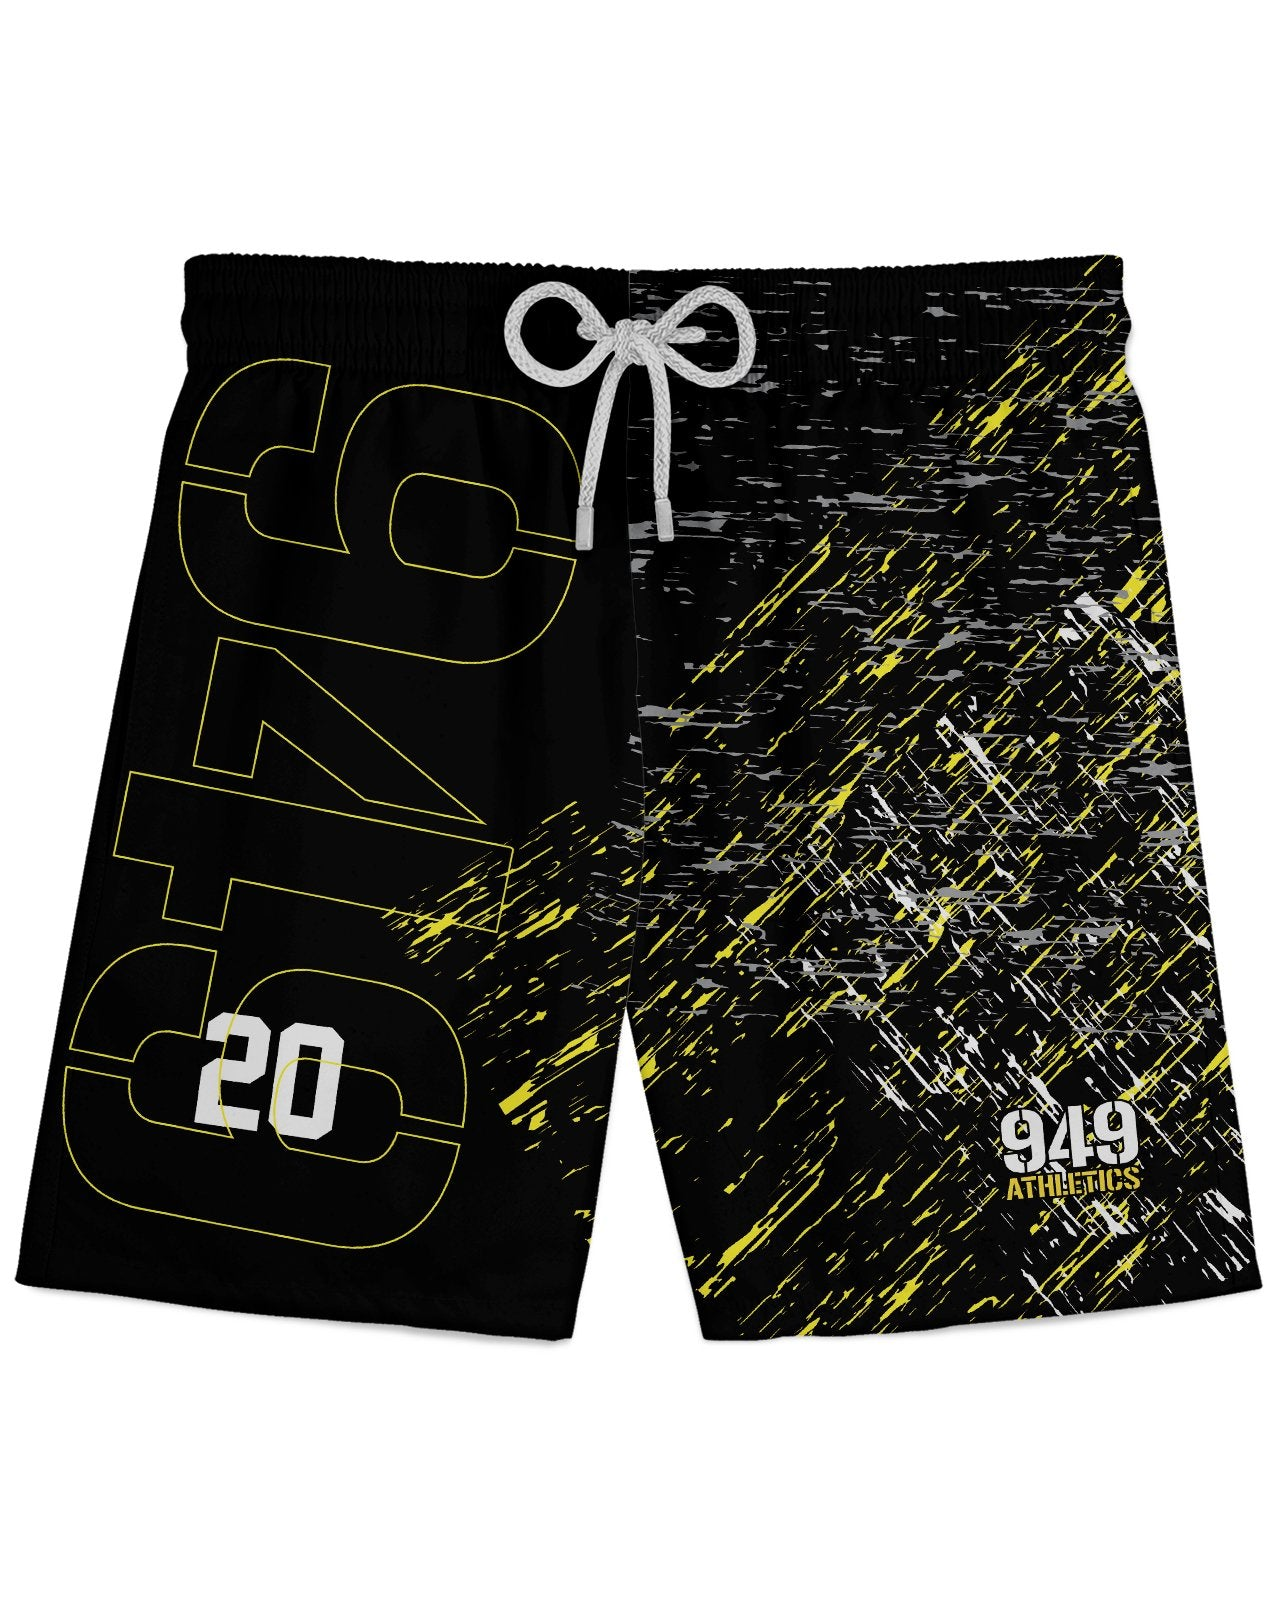 949 Athletics - Splatter Shorts